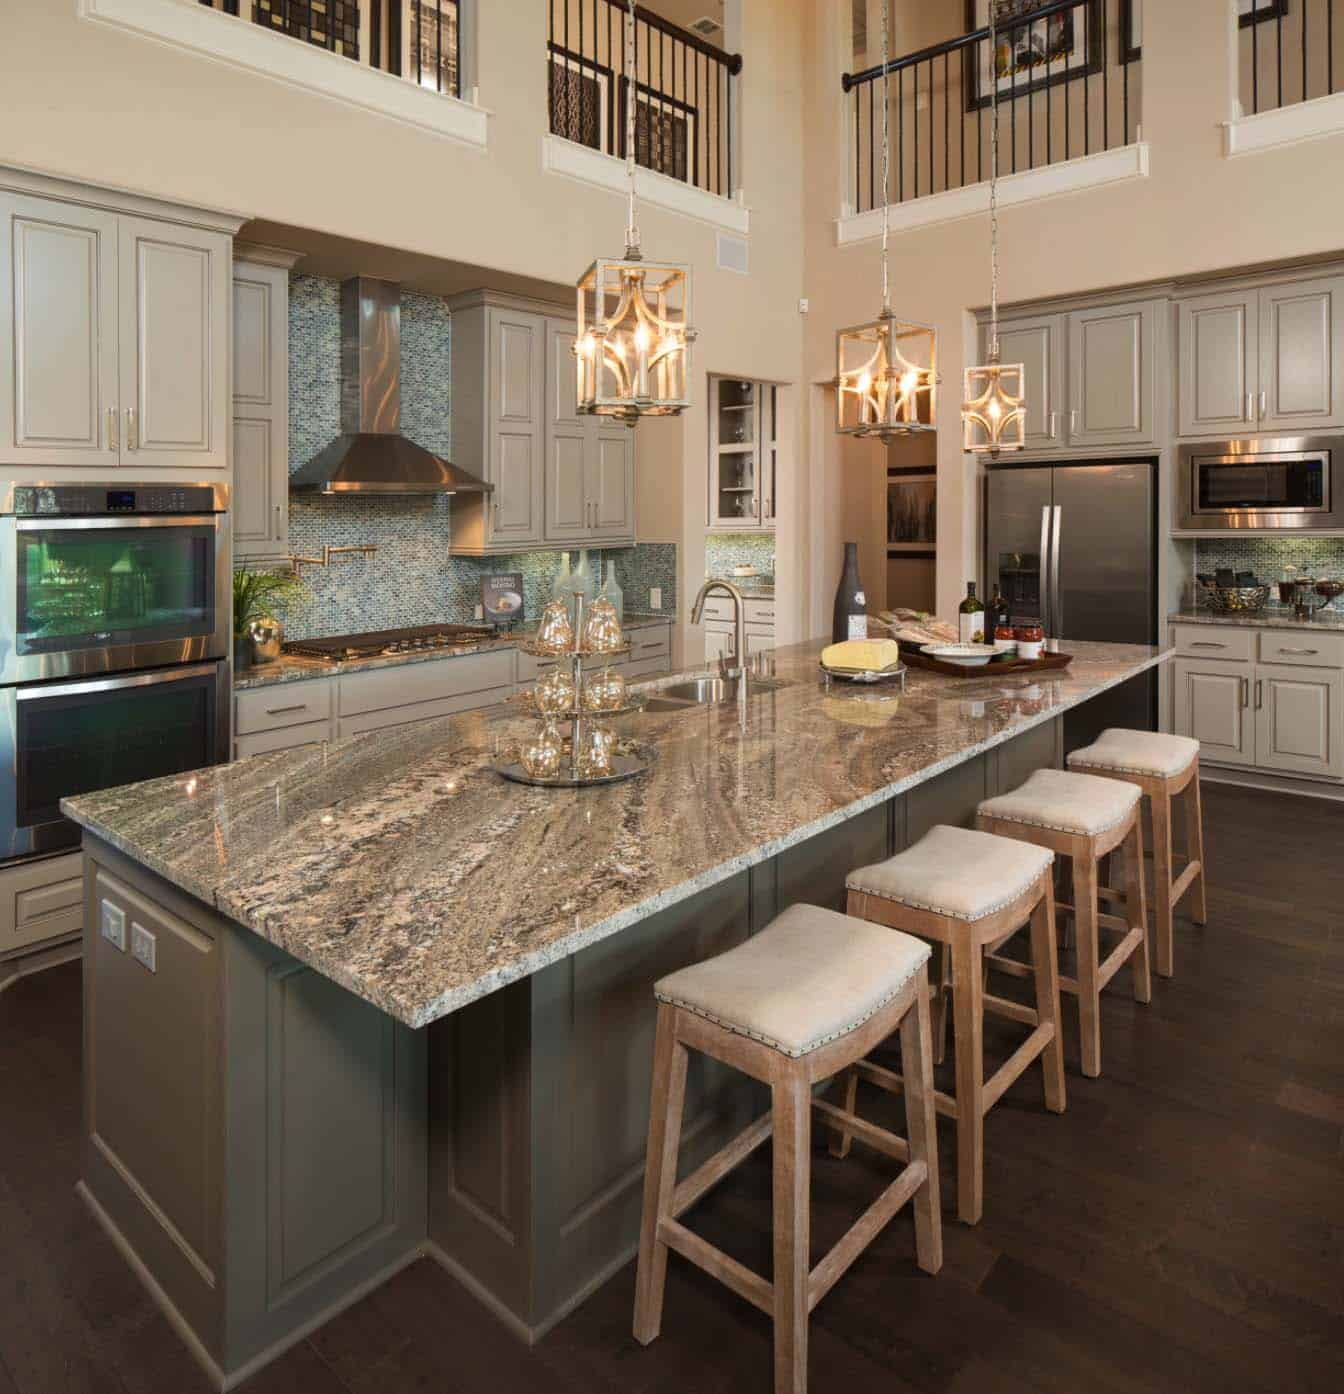 Kitchen Remodel Ideas 2016: 30+ Brilliant Kitchen Island Ideas That Make A Statement